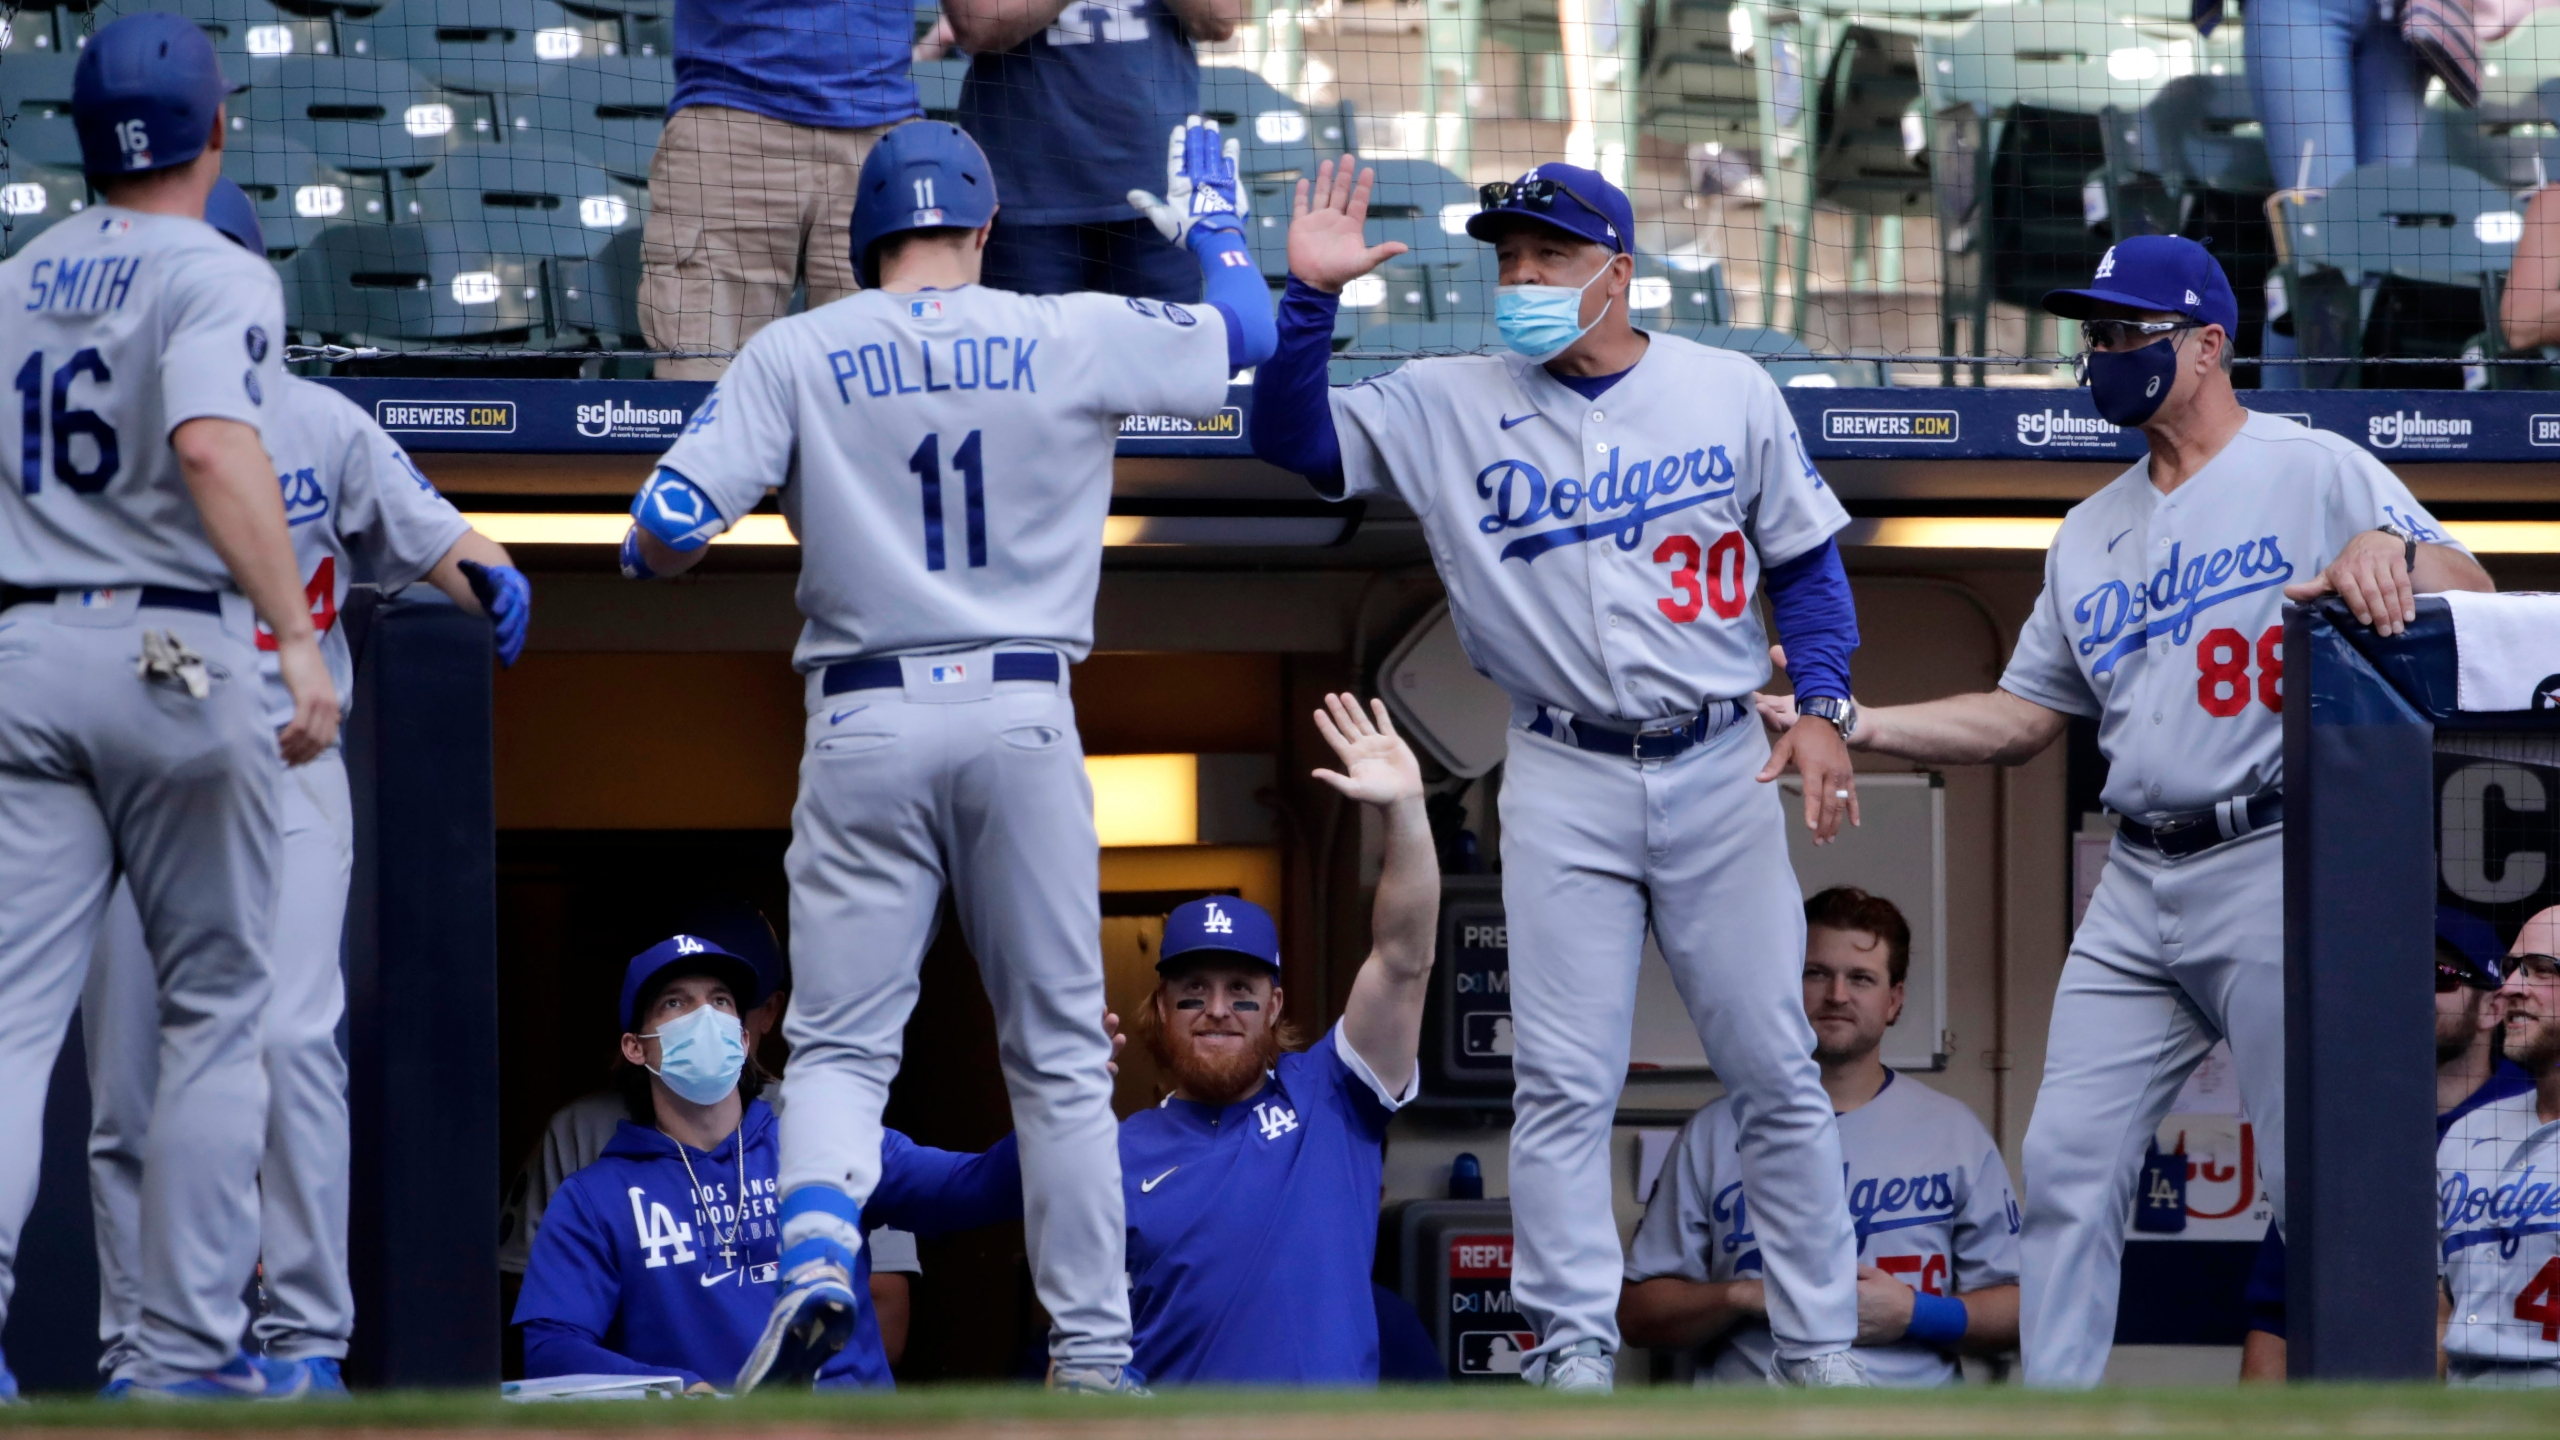 Los Angeles Dodgers' AJ Pollock (11) is congratulated by manager Dave Roberts (30) after hitting a three-run home run during the sixth inning of a baseball game against the Milwaukee Brewers, Sunday, May 2, 2021, in Milwaukee. (AP Photo/Aaron Gash)